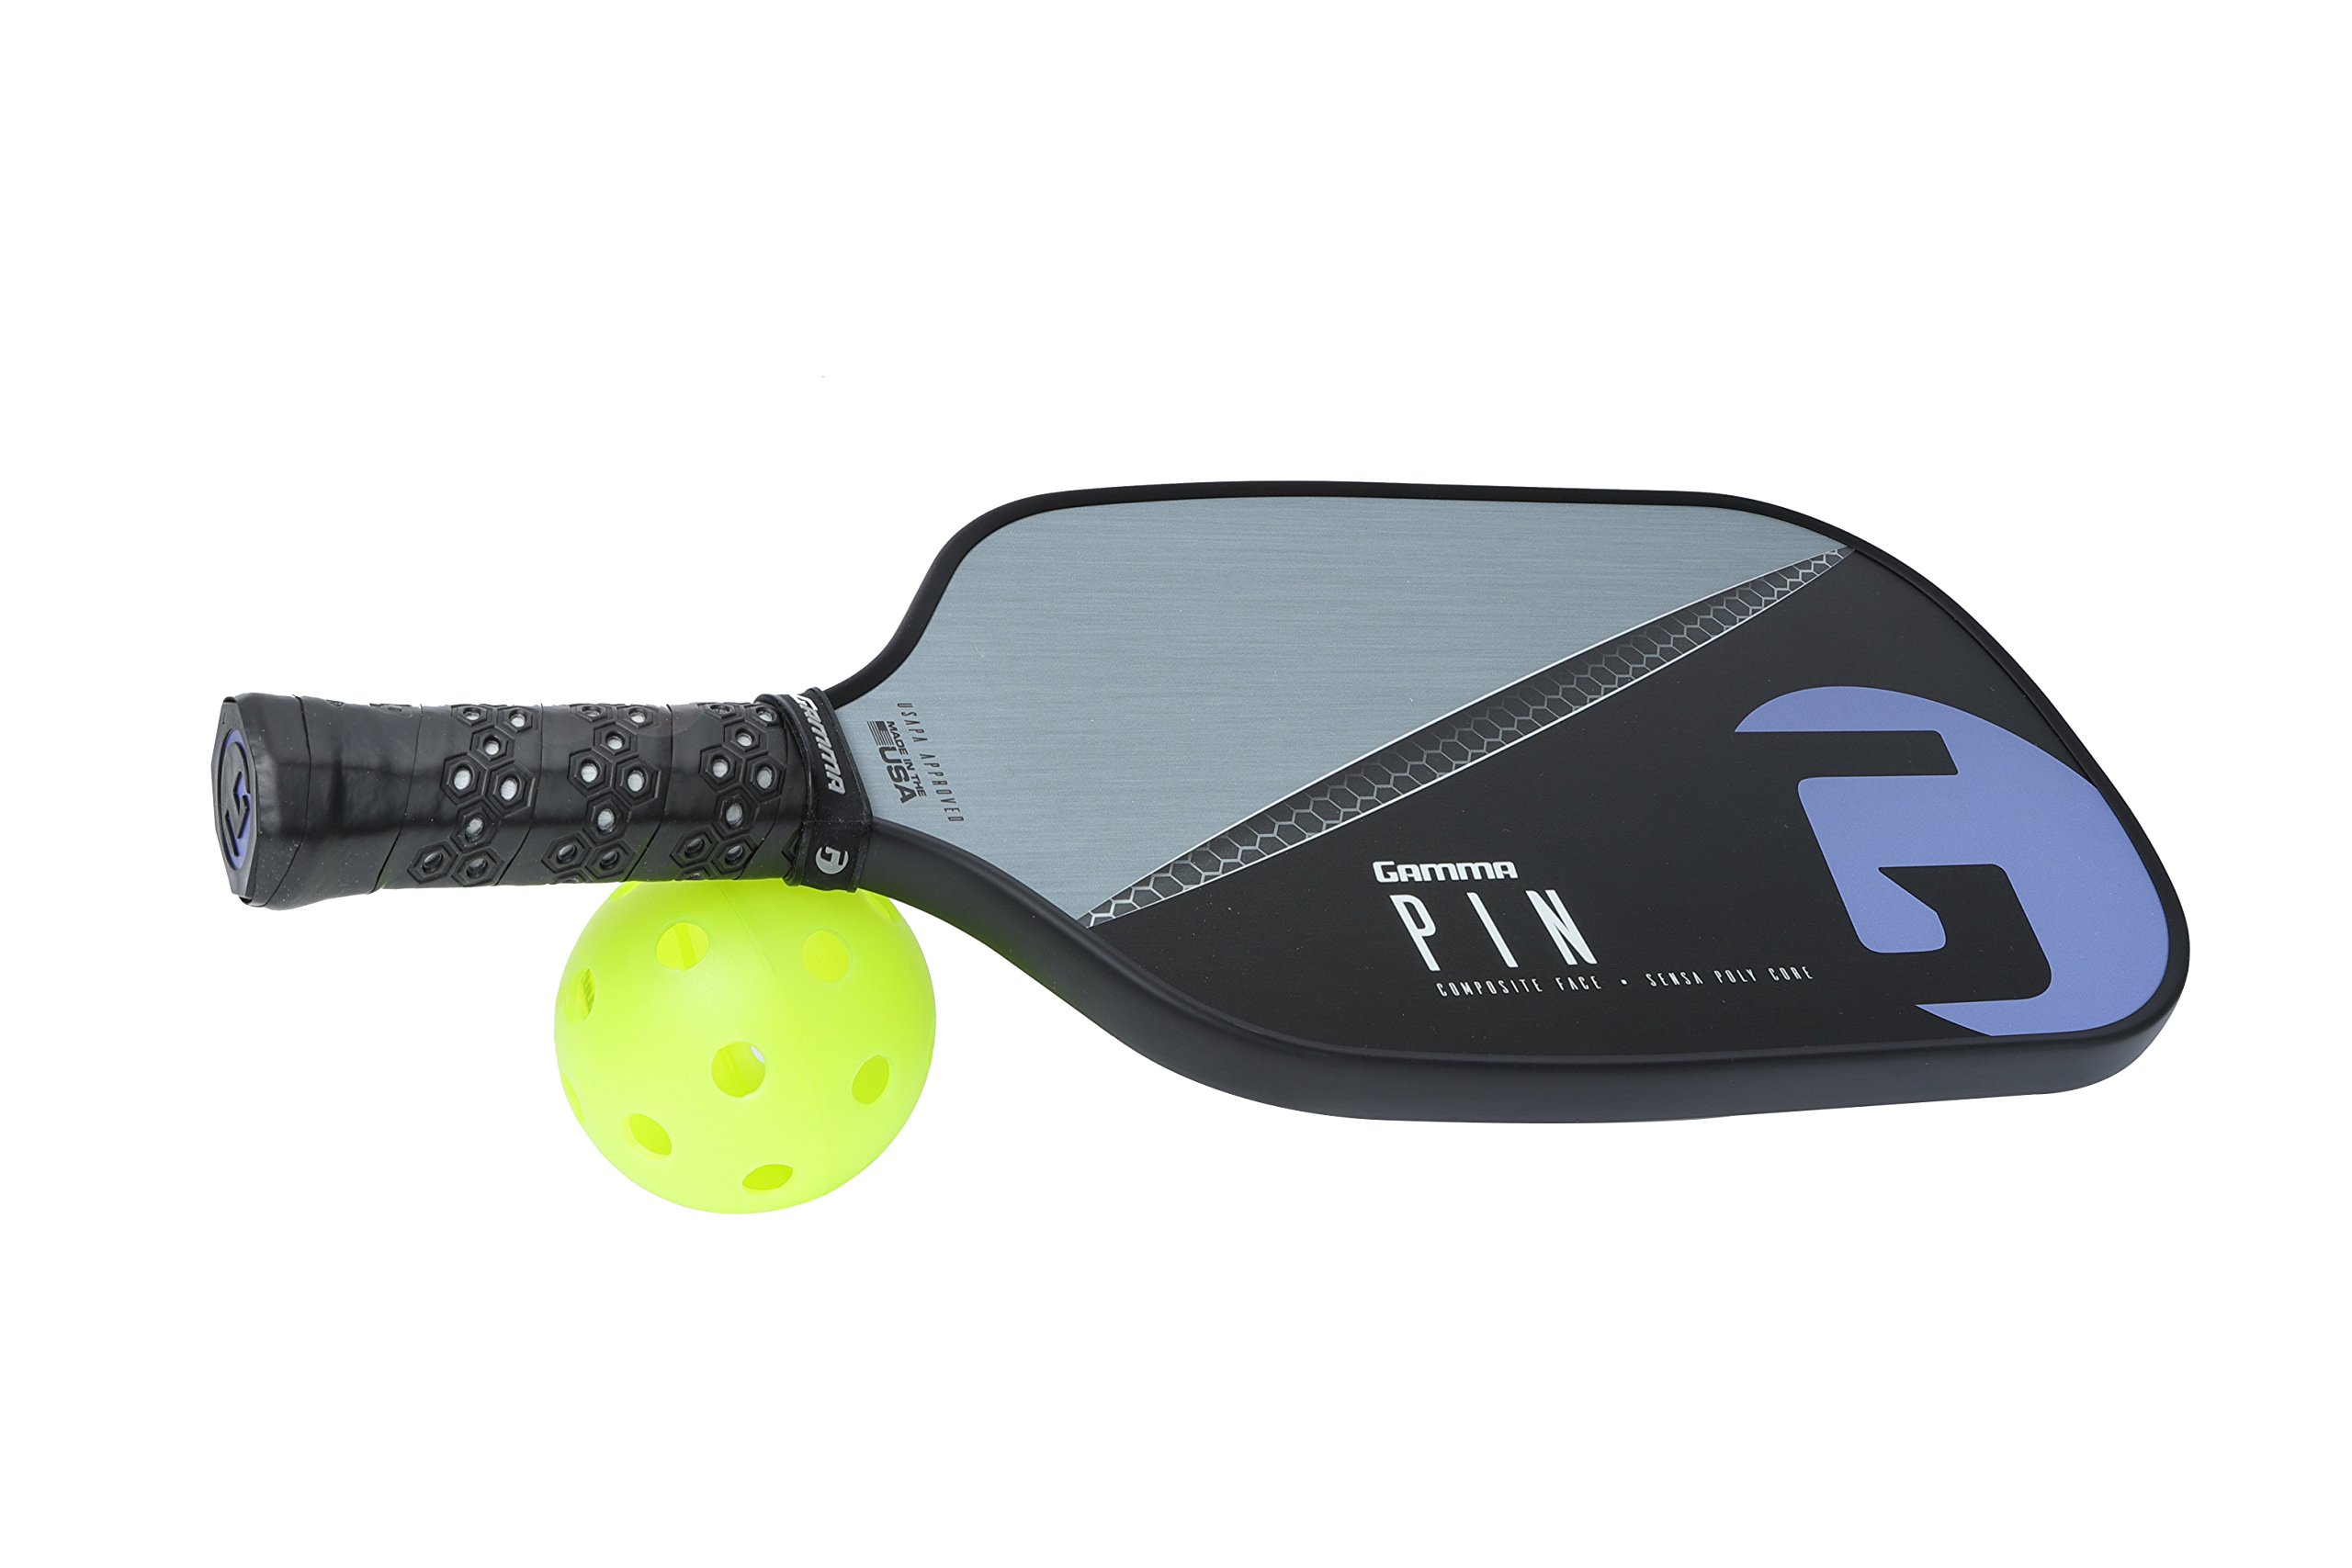 Gamma Pin Elongated Pickleball Paddle: Pickle Ball Paddles for Indoor & Outdoor Play - USAPA Approved Racquet for Adults & Kids - Pink/Blue by Gamma (Image #6)